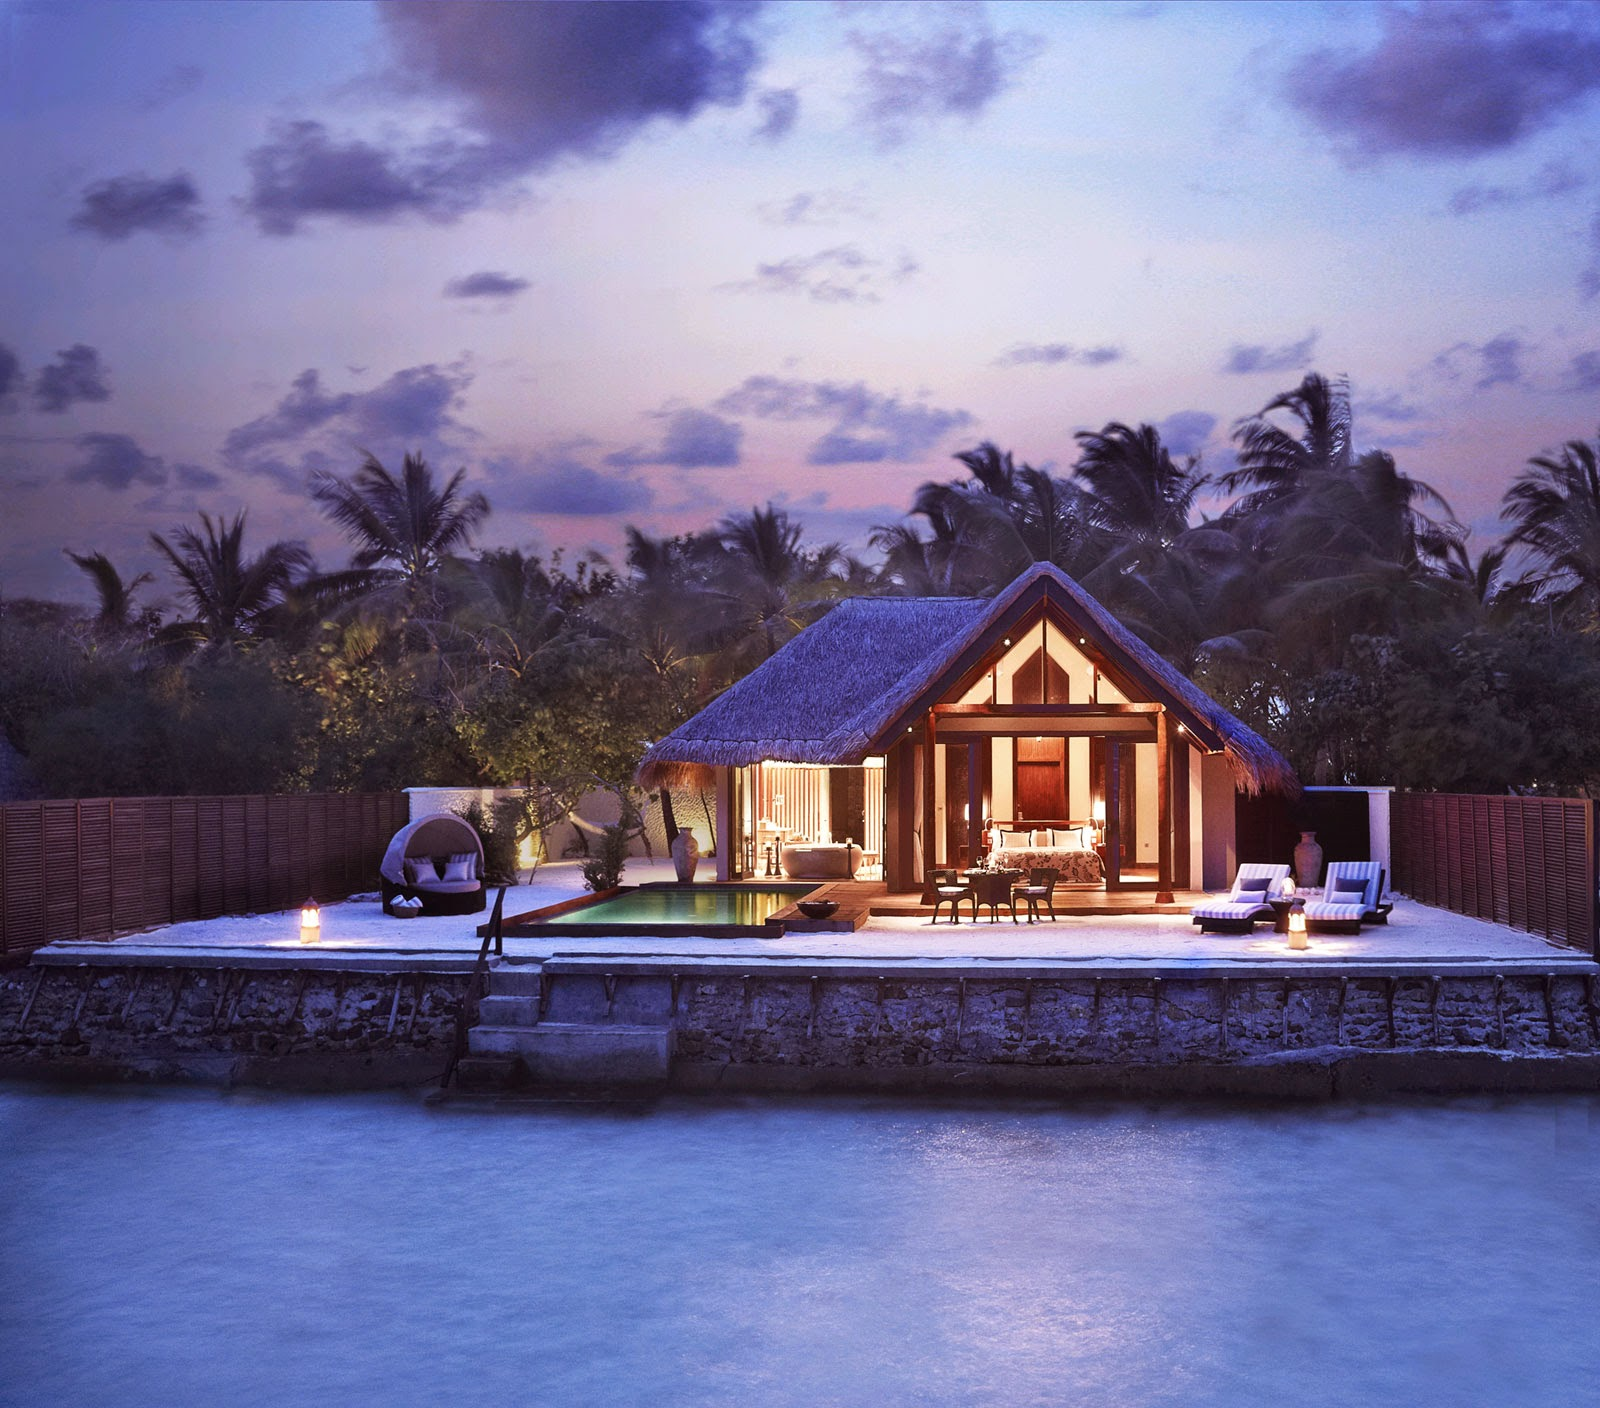 Top 5 Exotic Places to Stay in Goa | Goa Holiday Guide ...